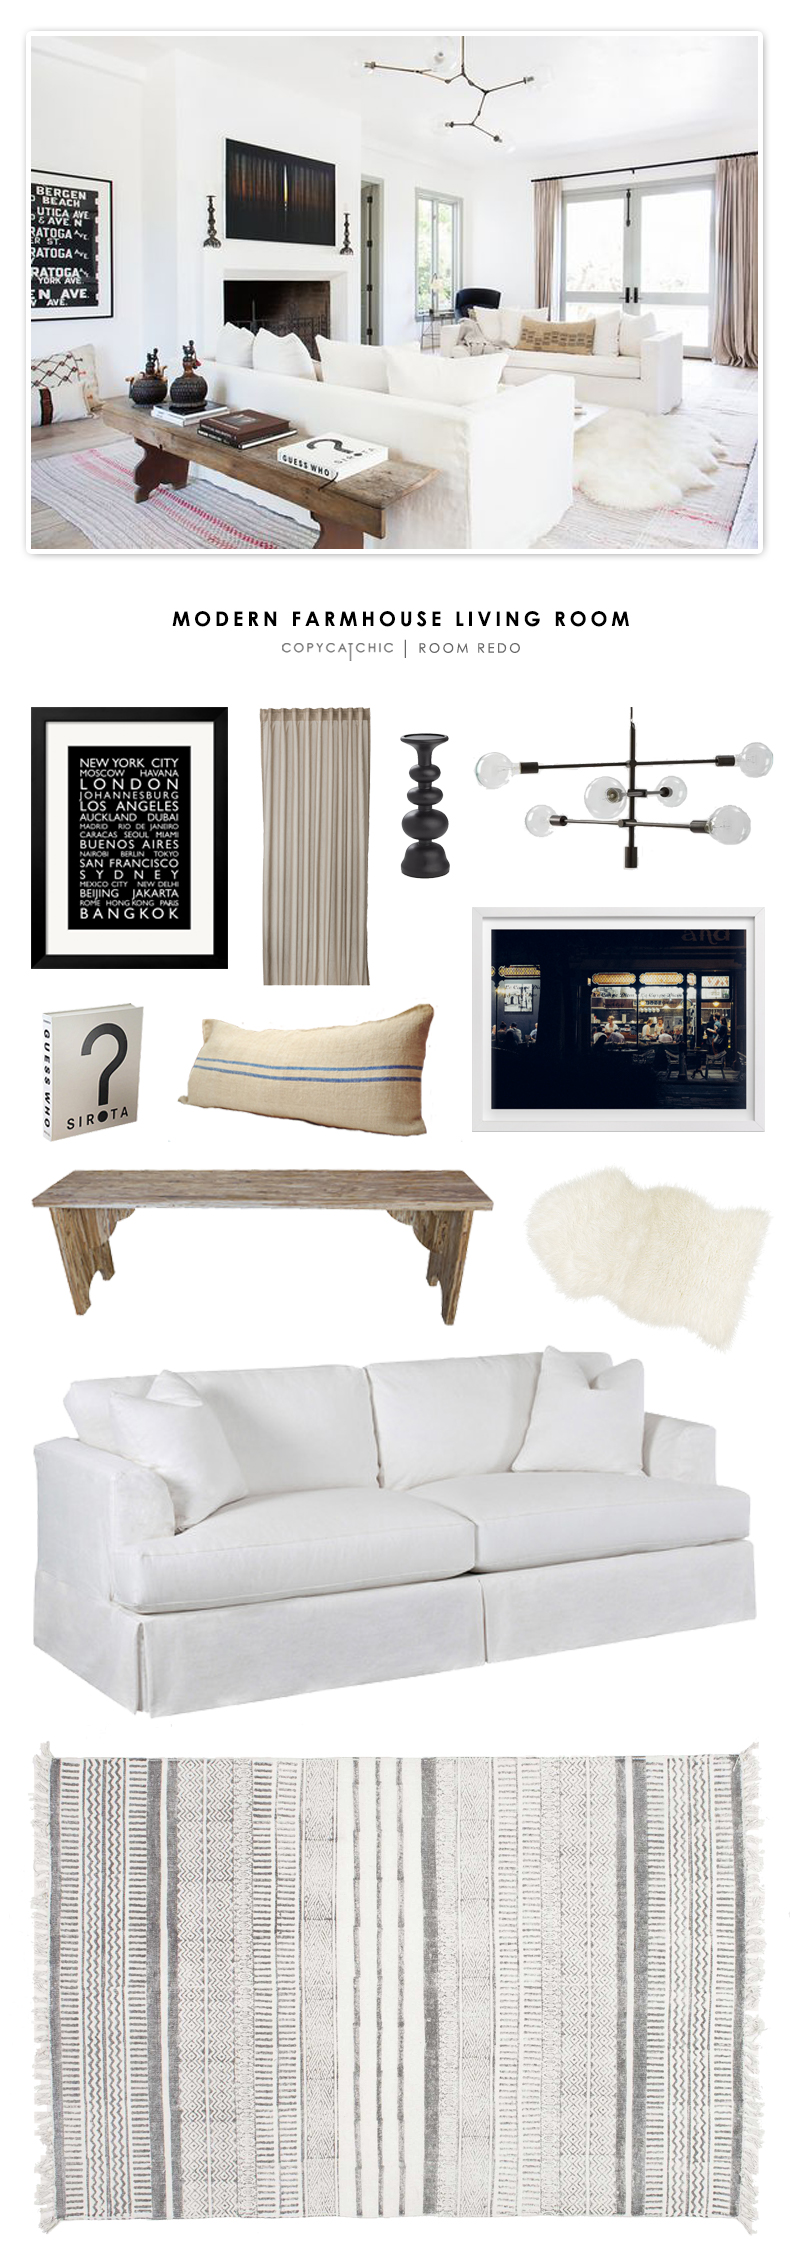 Sofa Scandinavian Jakarta Copy Cat Chic Room Redo Modern Farmhouse Living Room Copycatchic